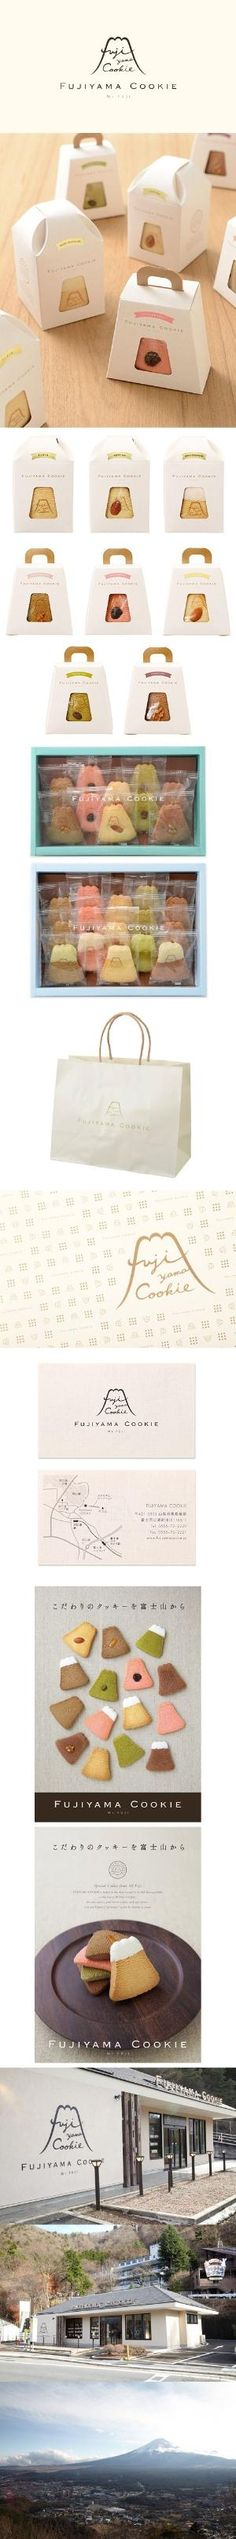 FUJIYAMA COOKIE / logo / package / shop card / poster / sign / FROM GRAPHIC by stefanie